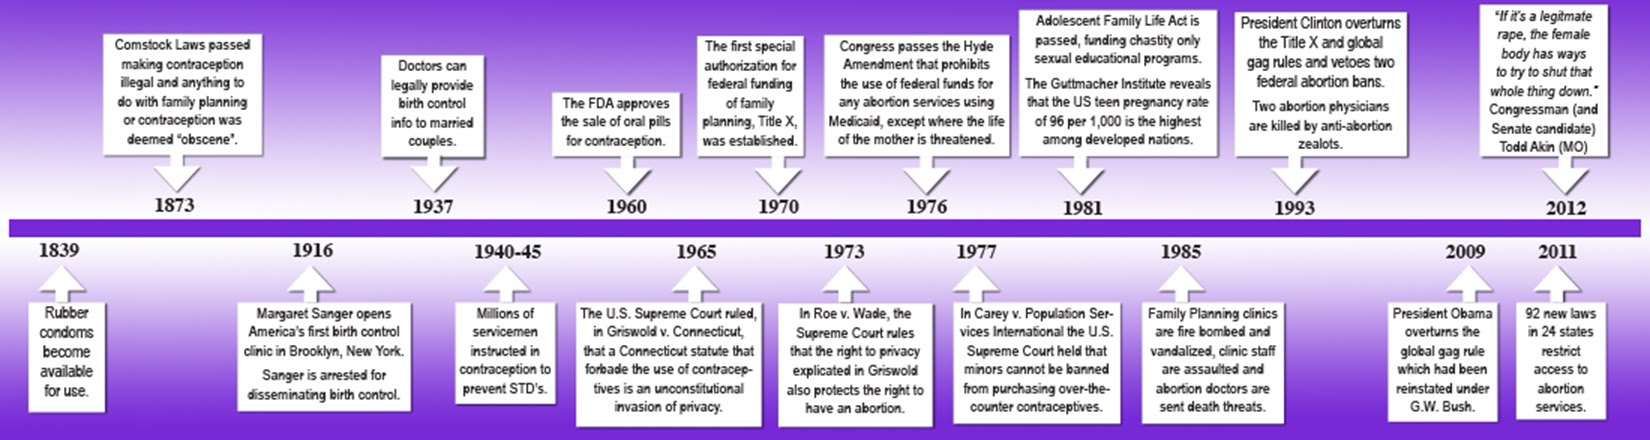 Reproductive Rights Timeline